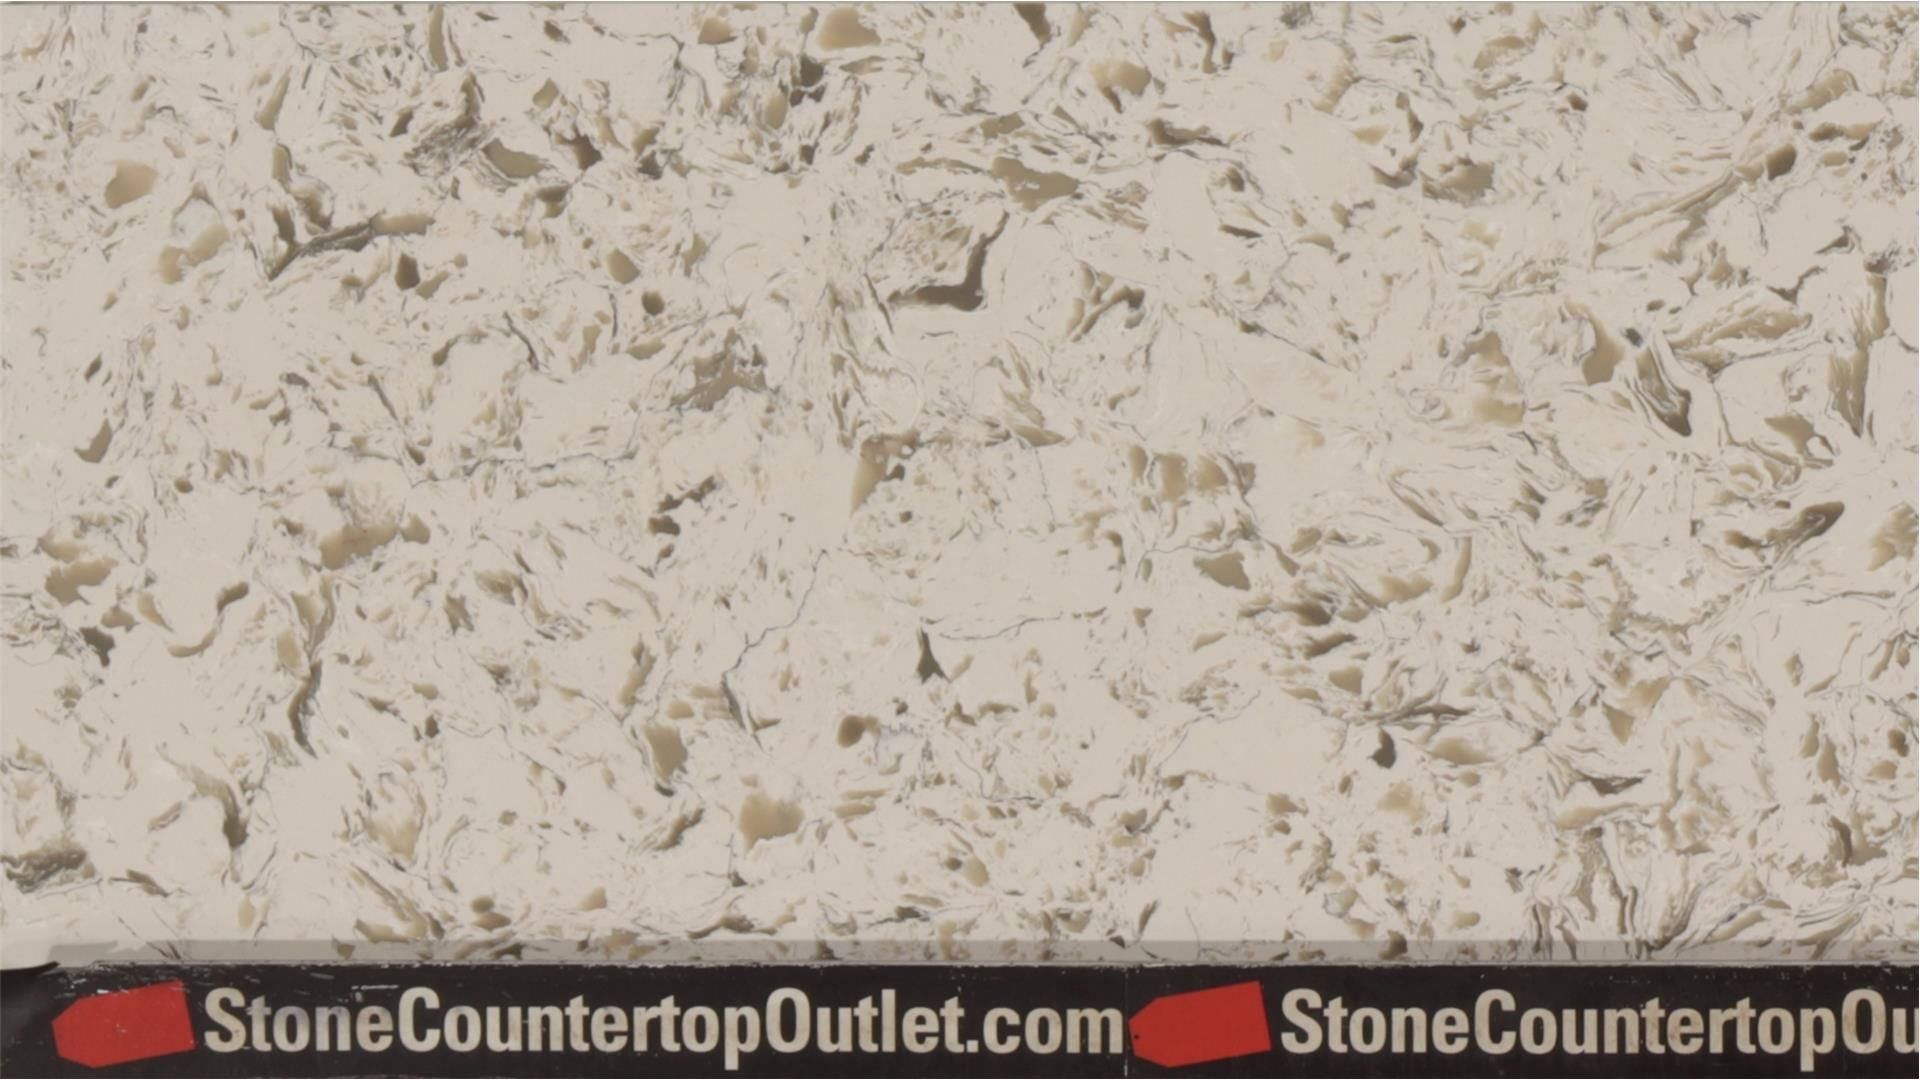 Montclair White In Stock At Stone Countertop Outlet With Images Stone Countertops Countertops How To Dry Basil